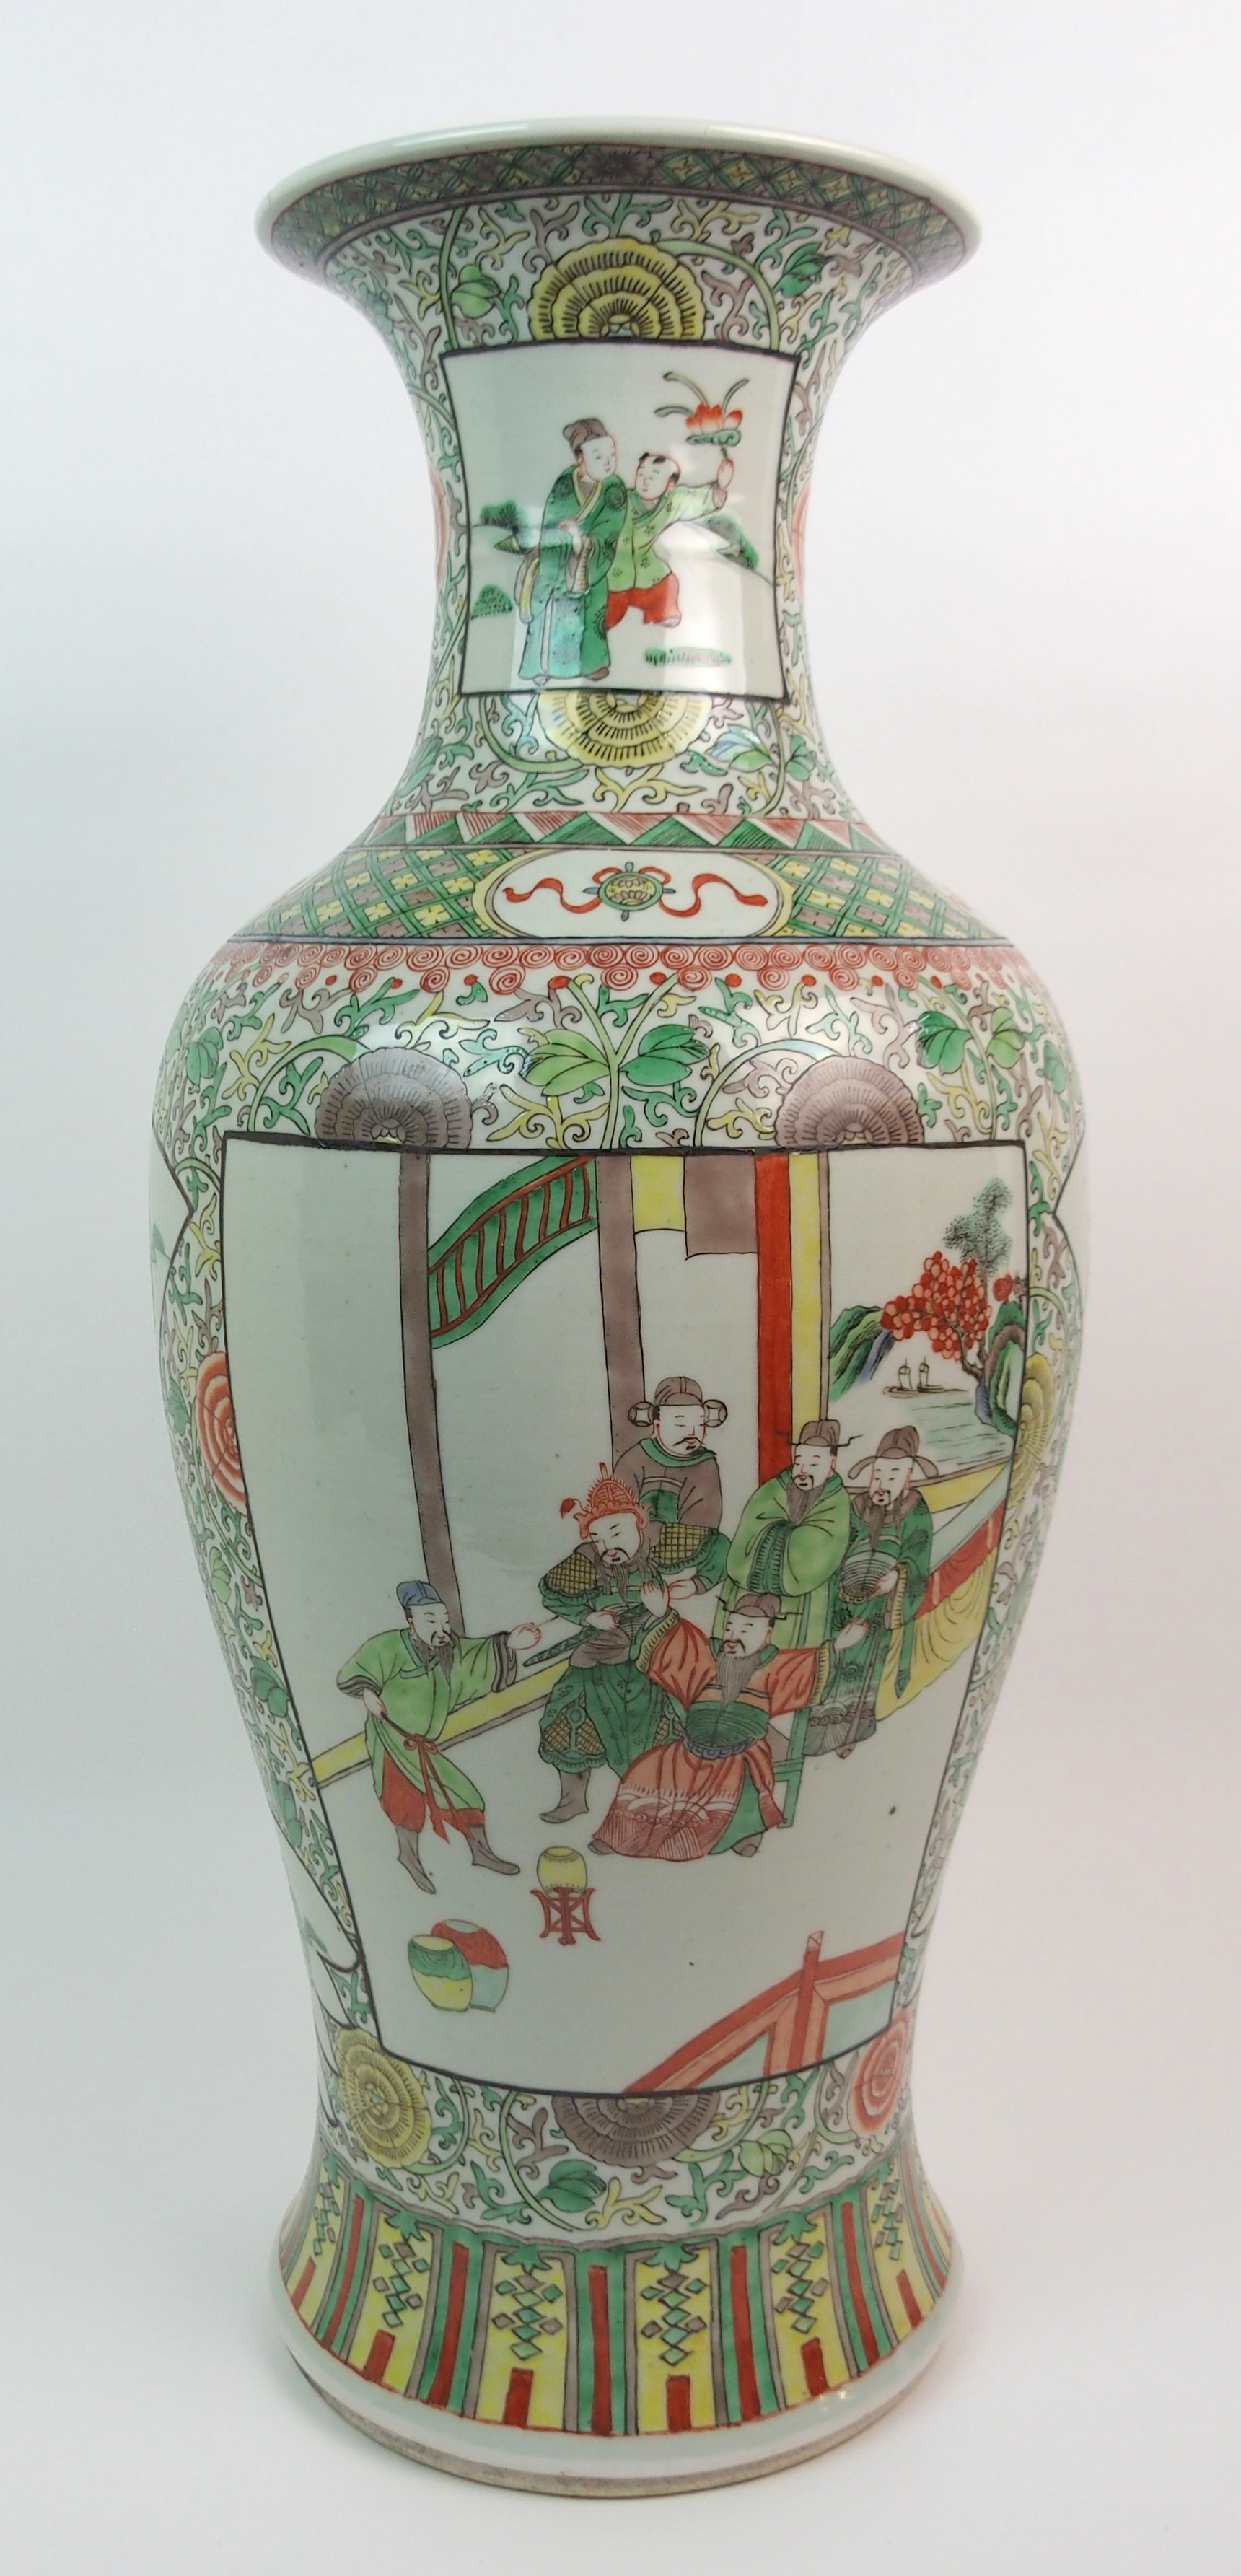 A CHINESE FAMILLE VERTE LARGE BALUSTER VASE painted with panels of figures surrounded by flowers and